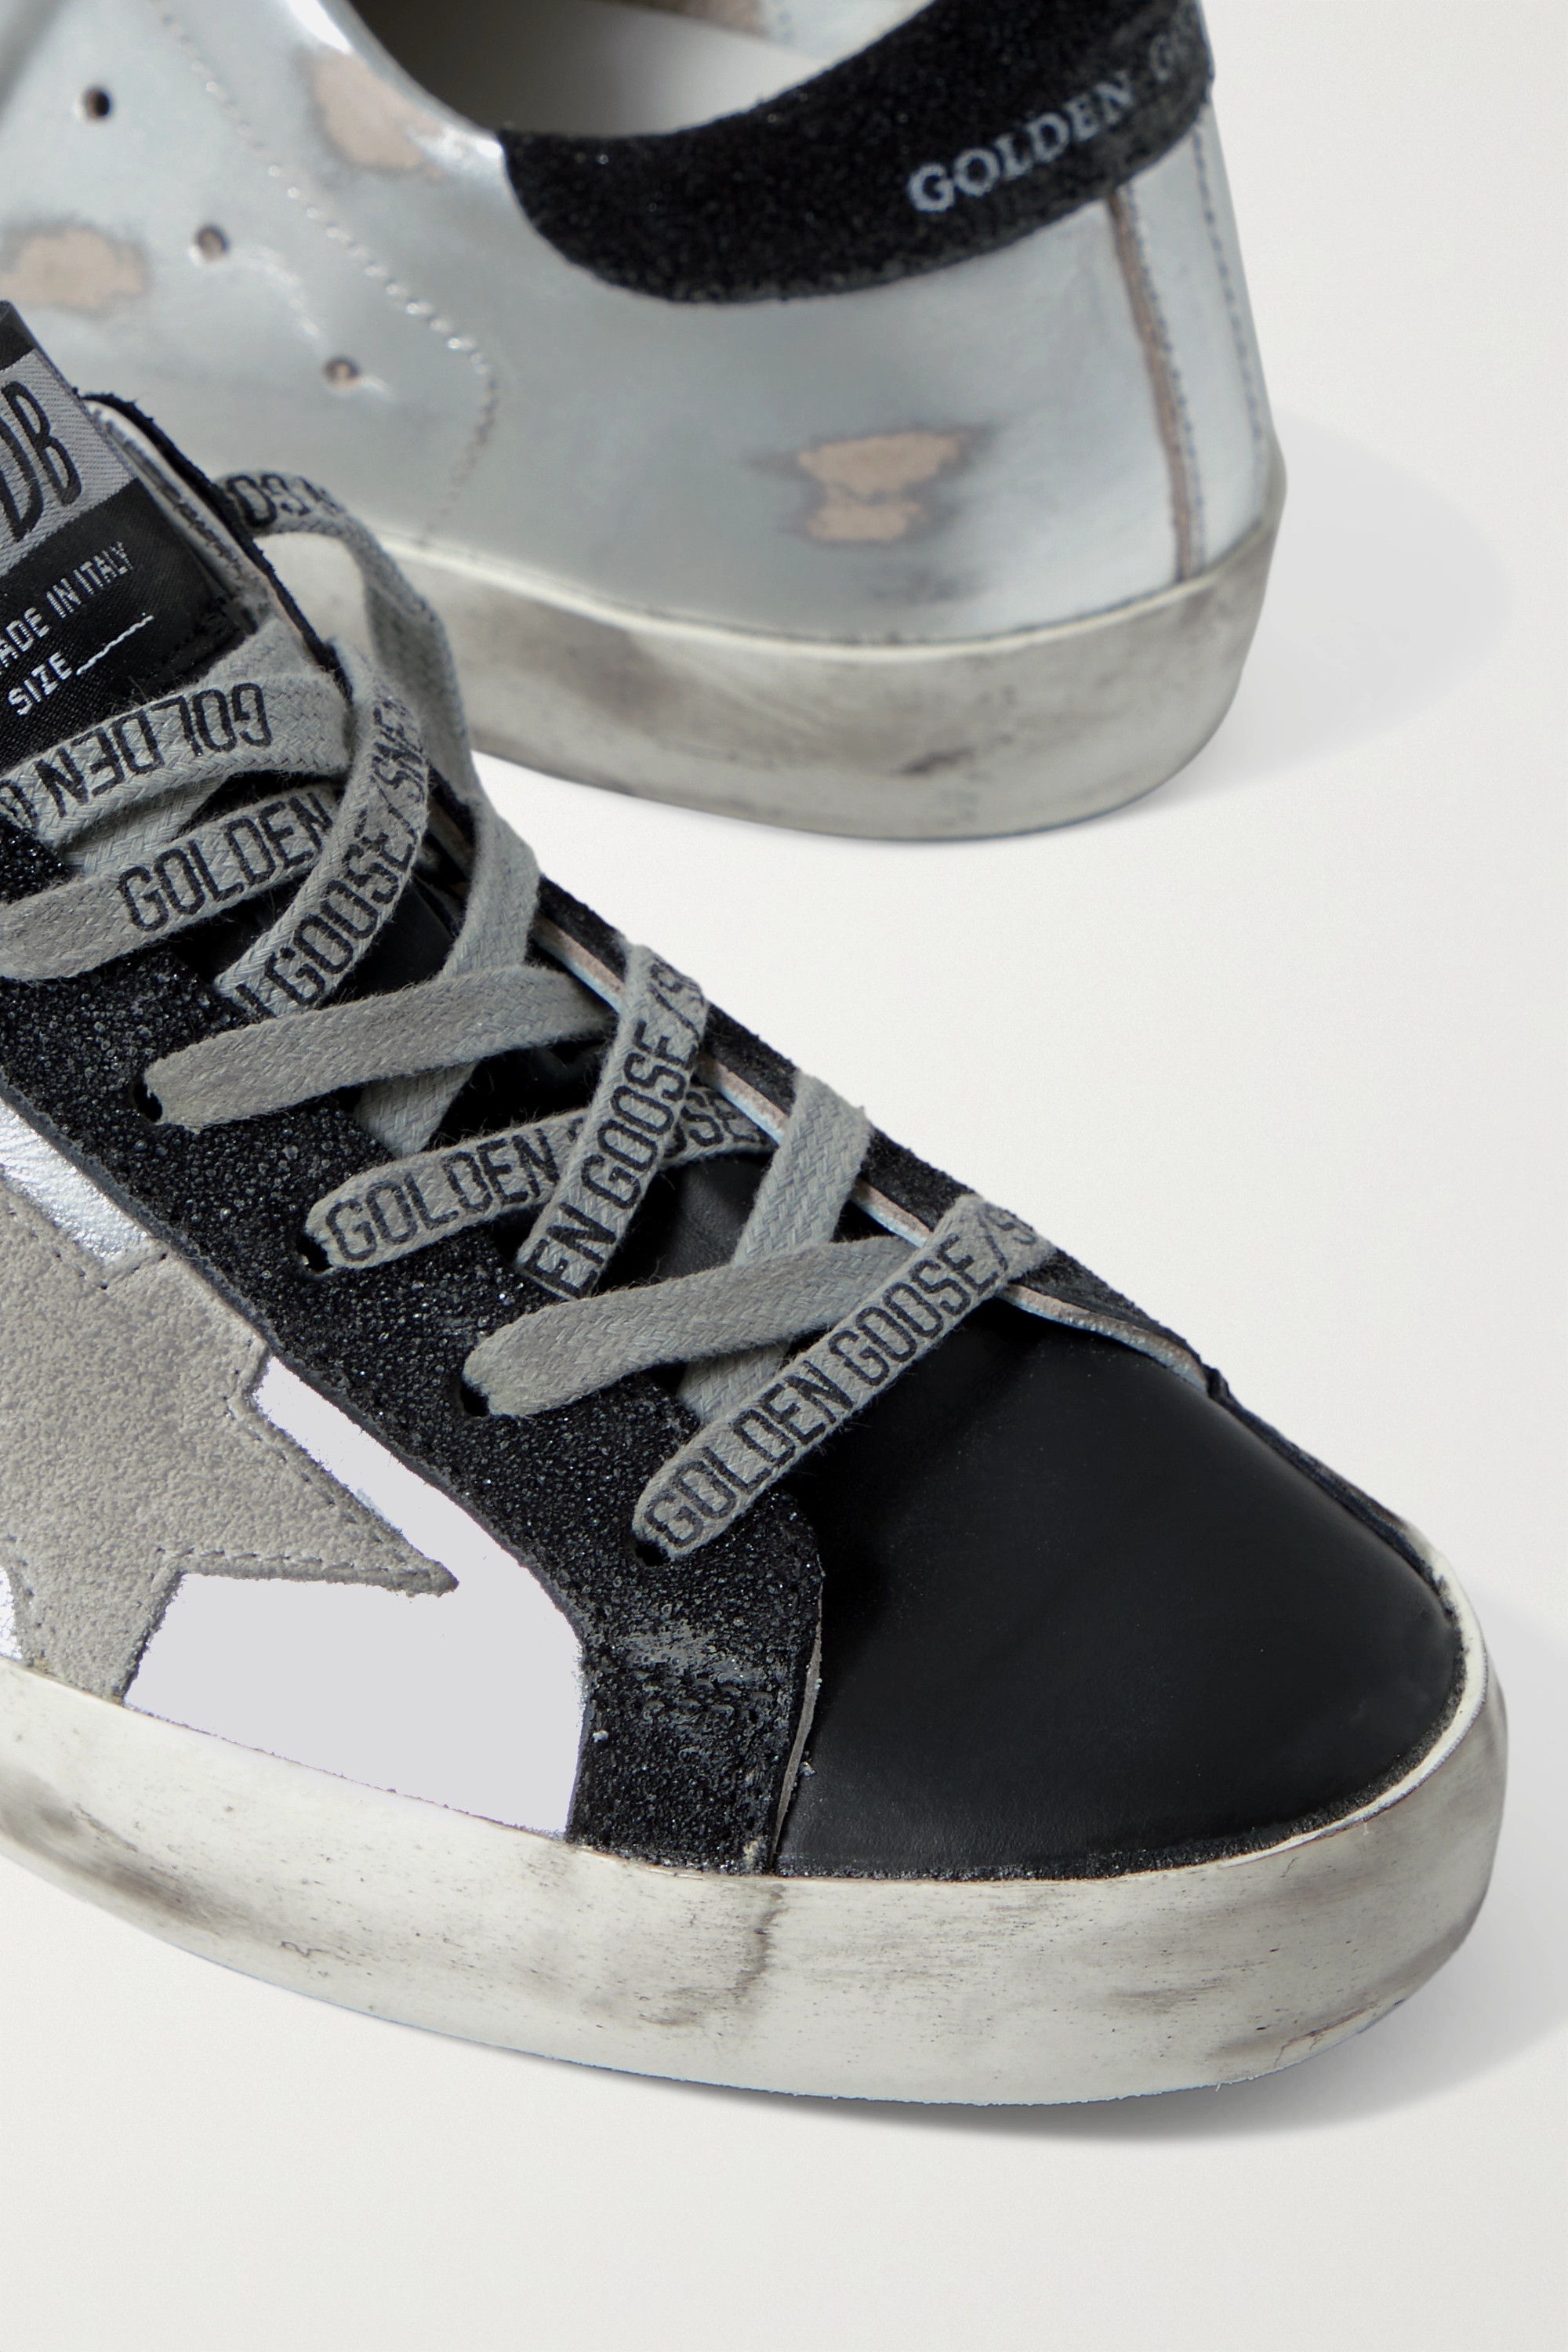 Golden Goose Superstar metallic distressed leather and suede sneakers